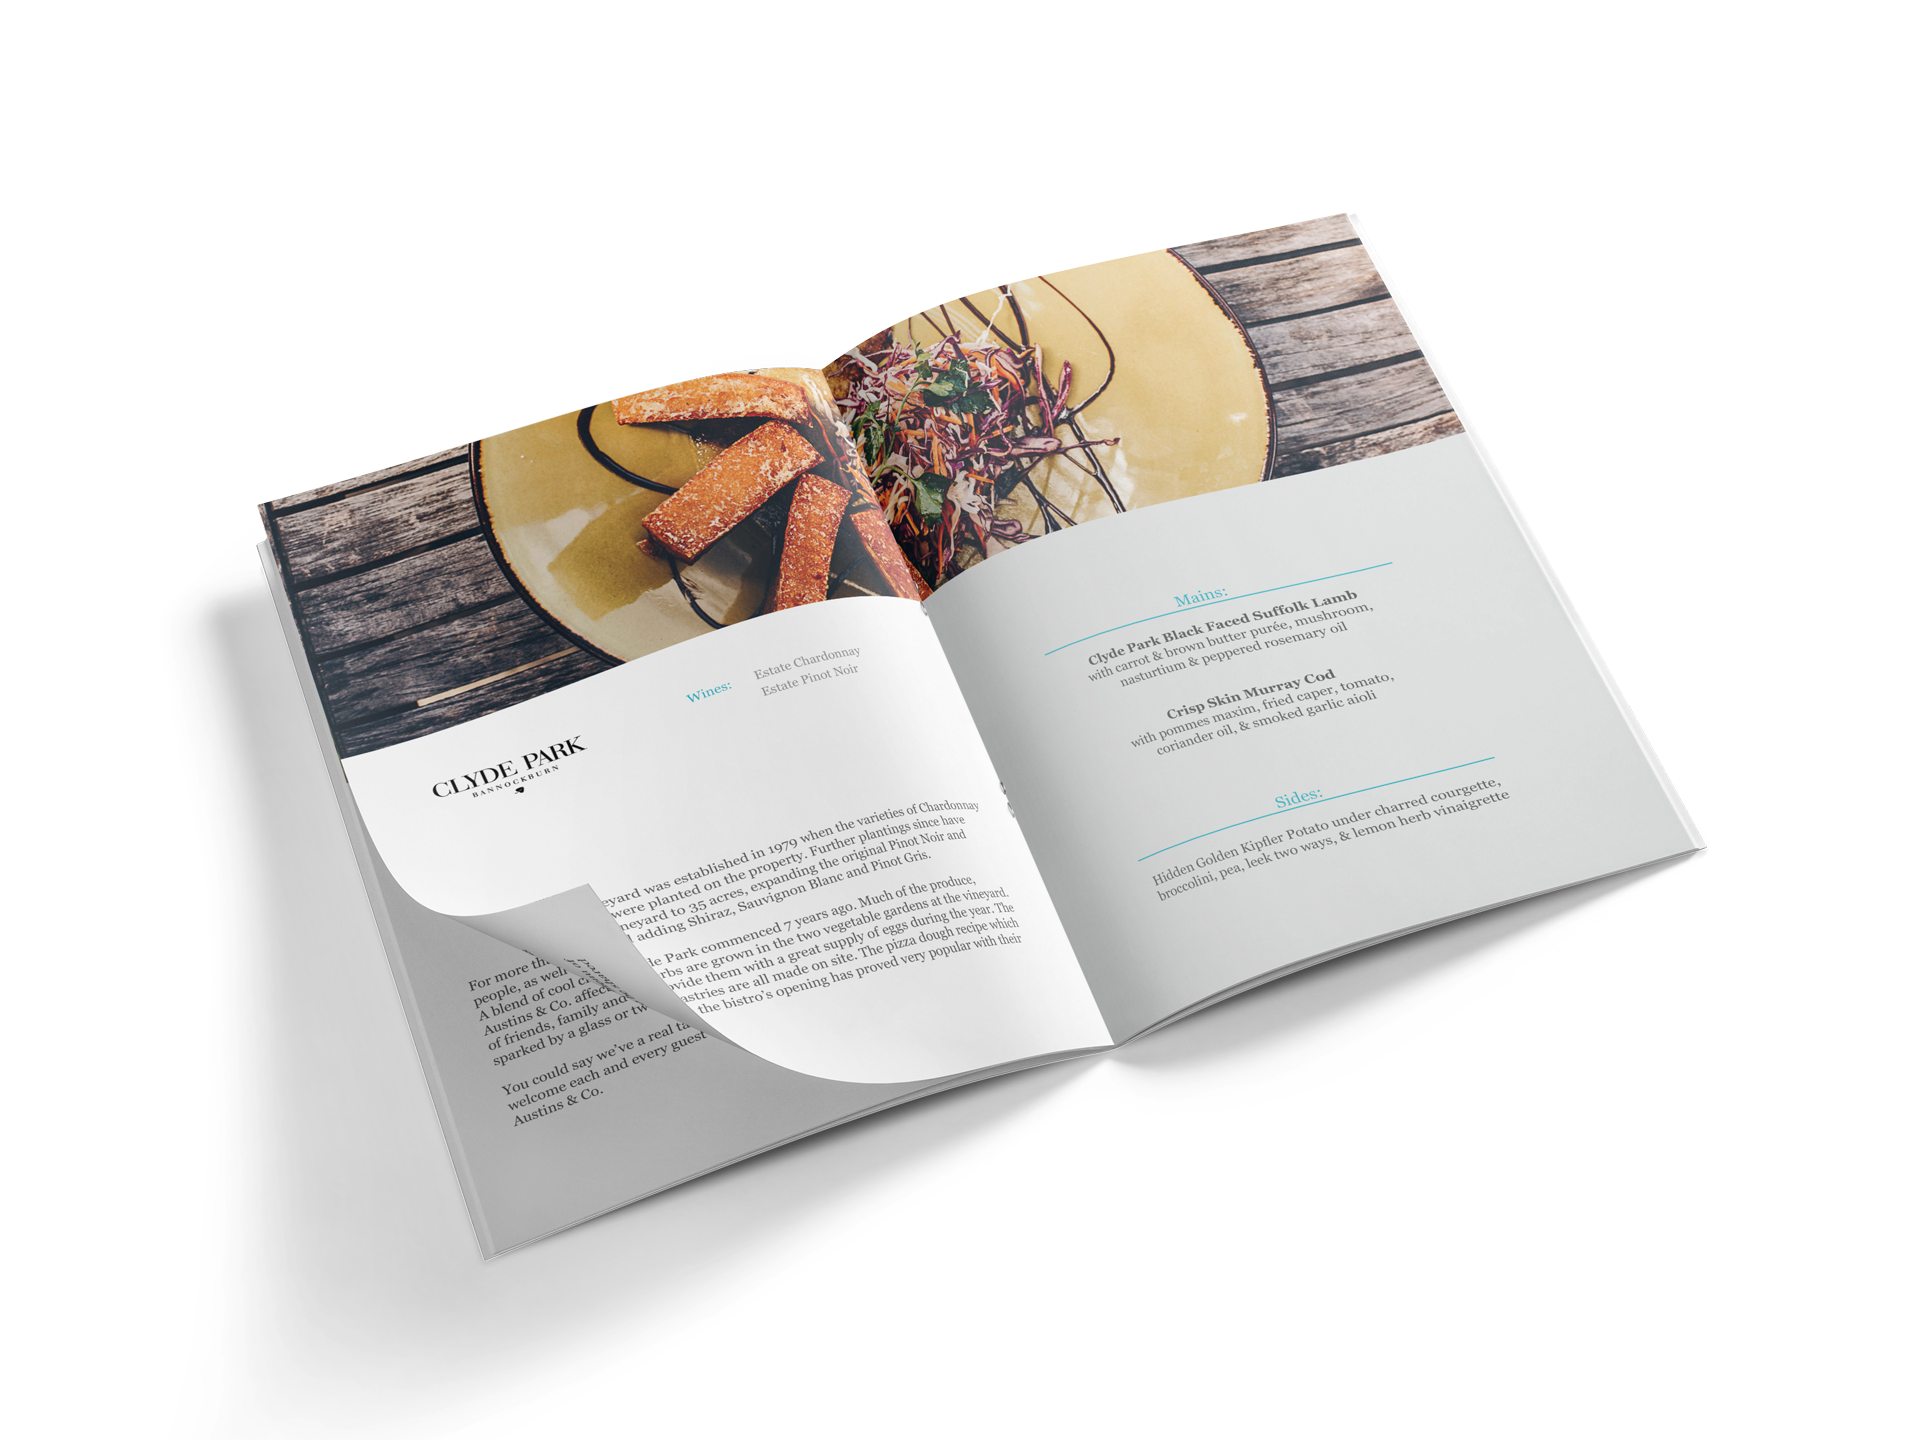 Gourmet Food & Wine Trail fundraiser event booklet 2018